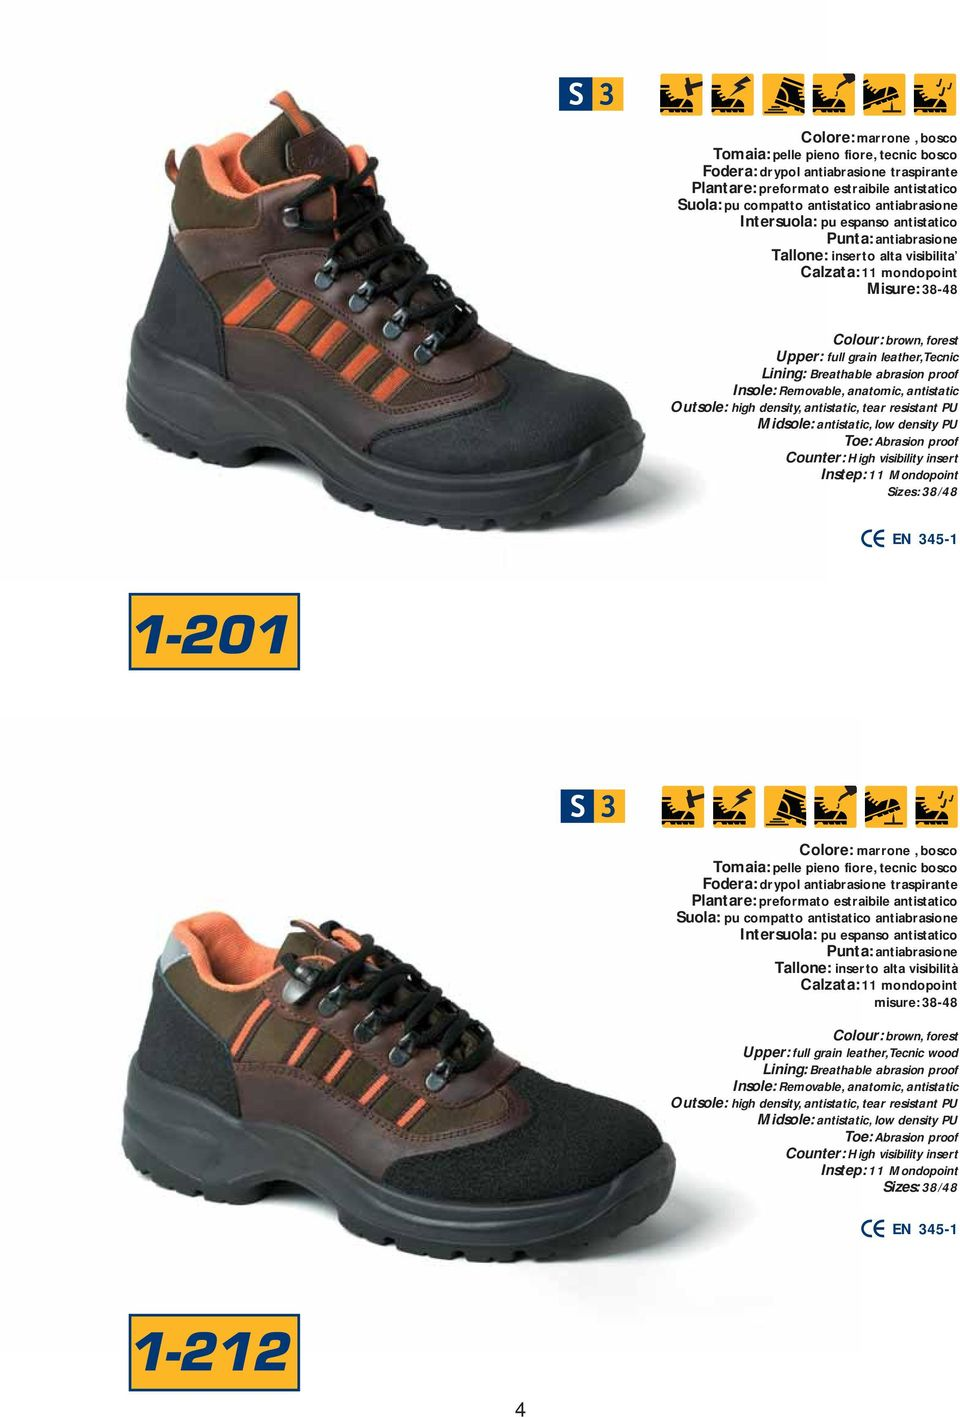 visibilità misure: 8-48 Colour: brown, forest Upper: full grain leather, Tecnic wood Toe: Abrasion proof Counter: High visibility insert EN 45-1